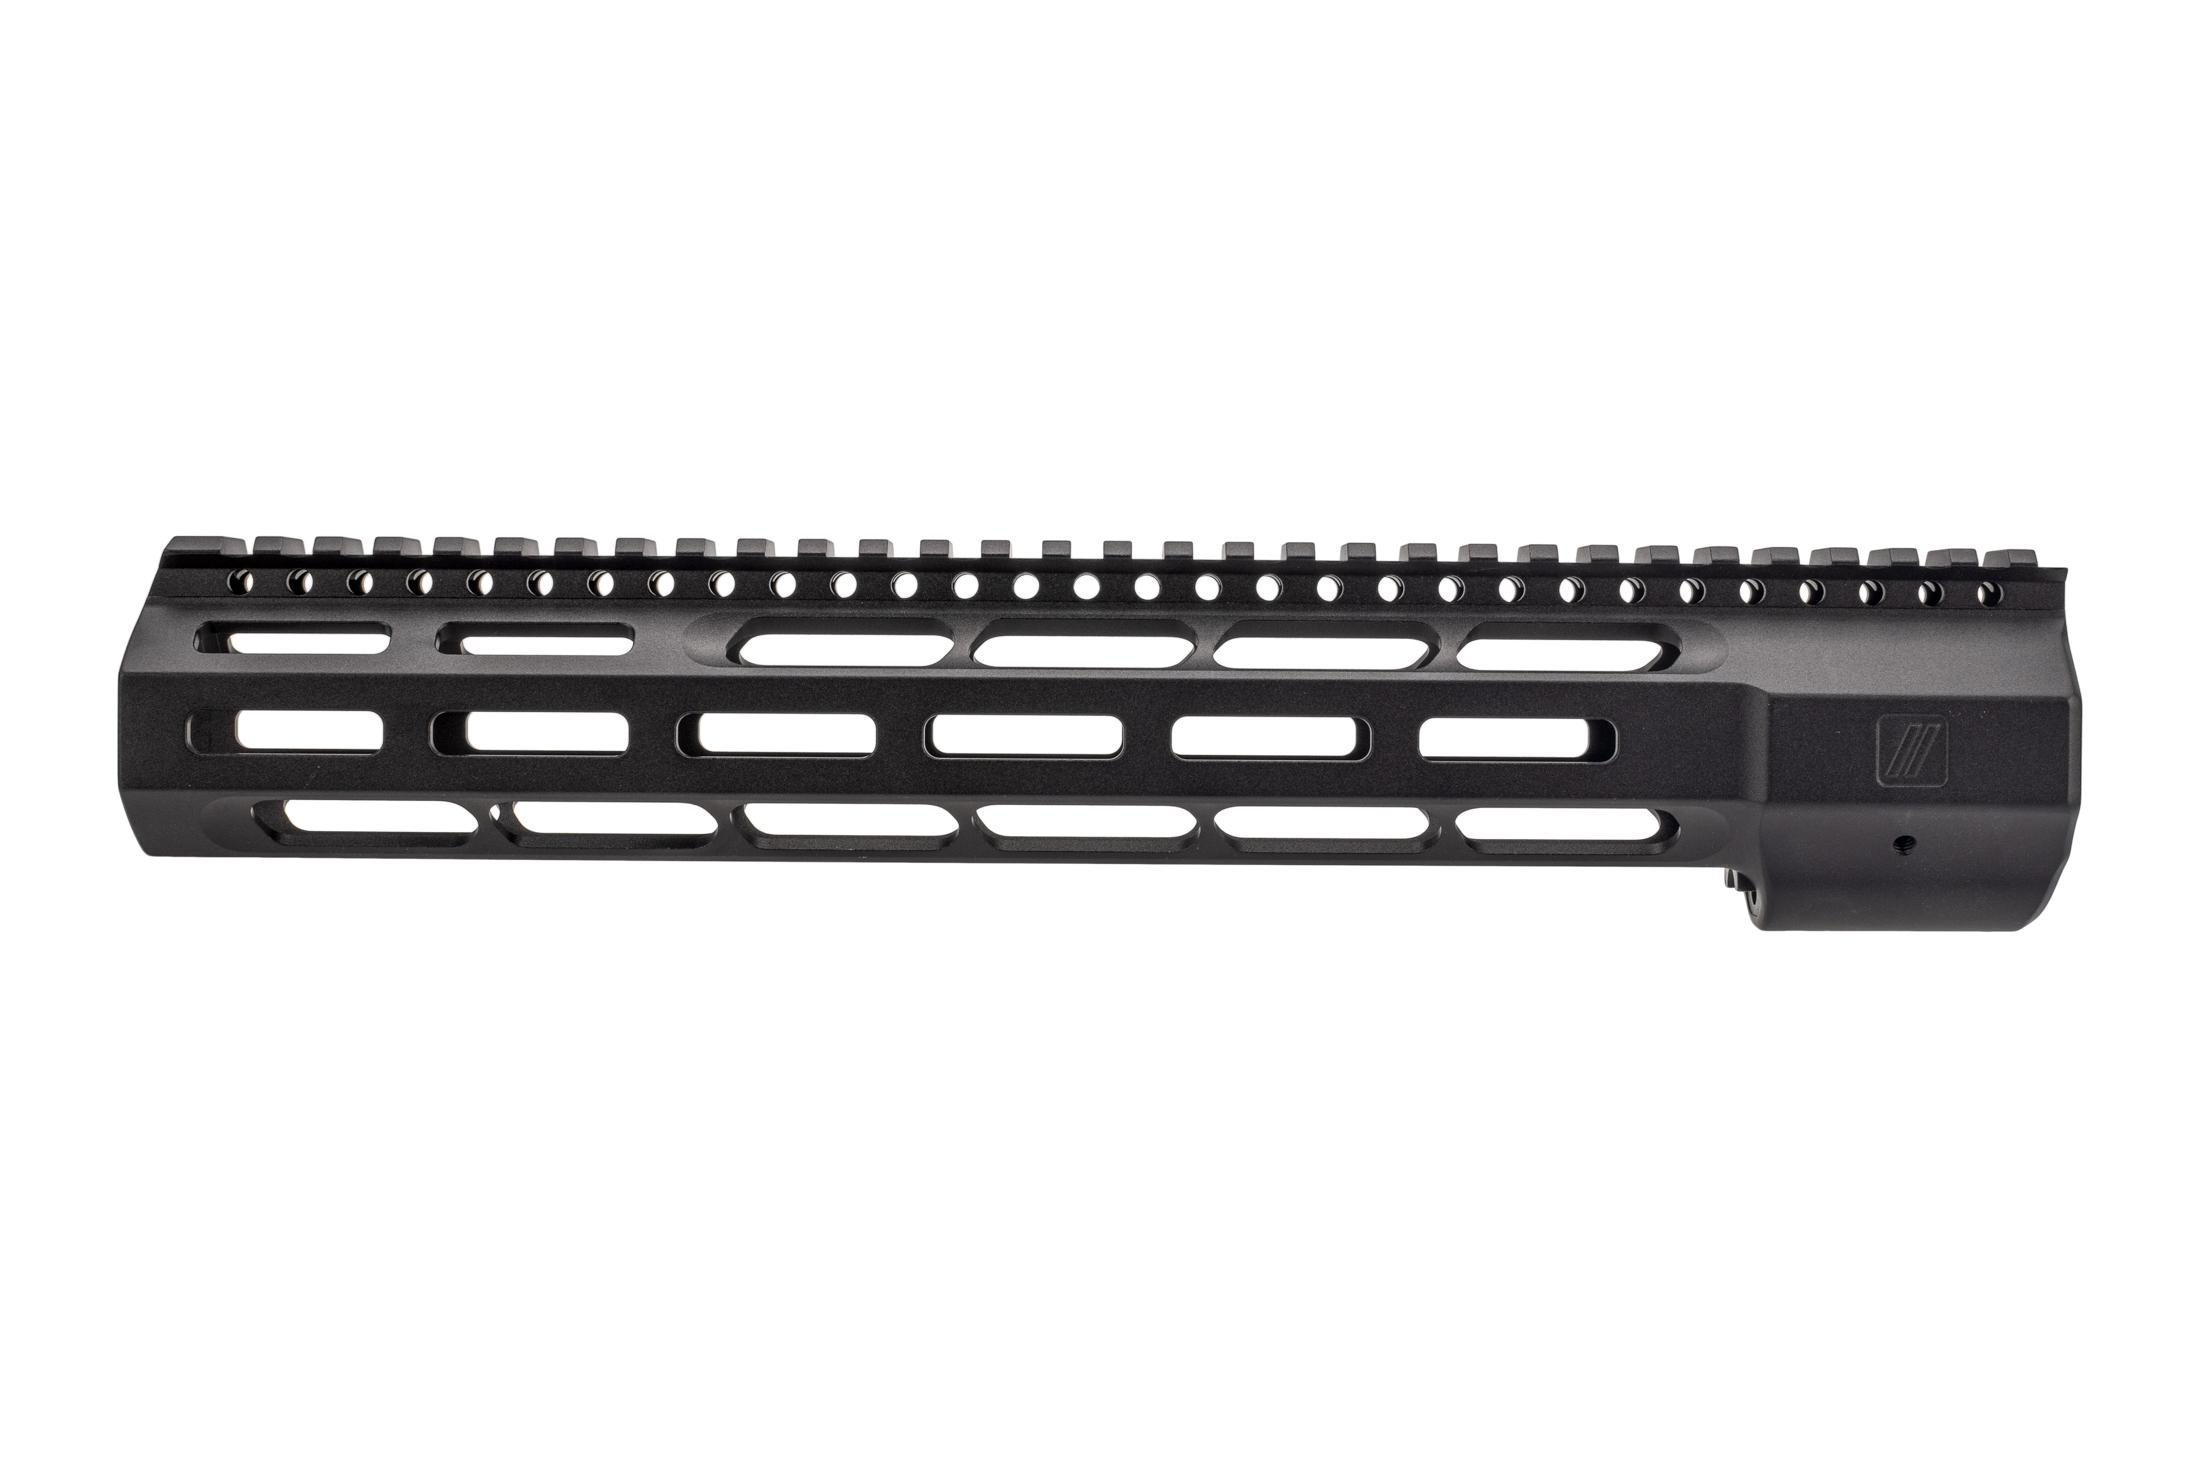 Zev Tech Wedge Lock AR10 handguard features a hardcoat anodized black finish